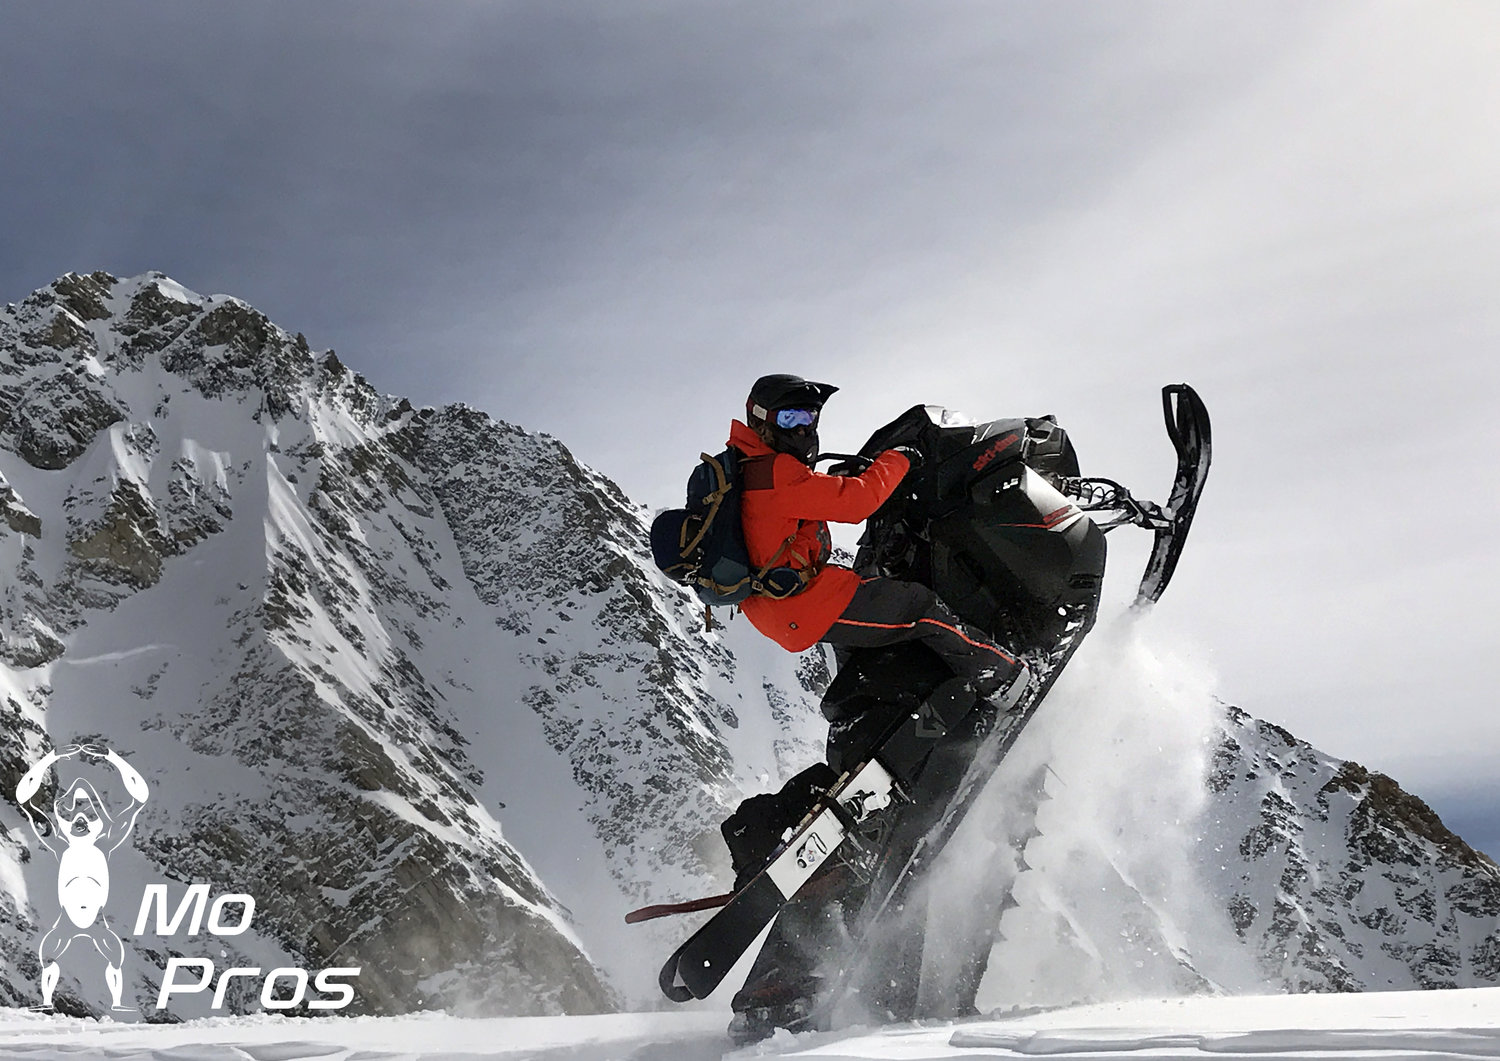 Ski_Snowboard_Rack_Snowmobile_Timbersled_Snowbike_Gas_Polaris_Ski-doo_Arctic+Cat_Cheetah+Factory+Racing_Backcountry+United_Gear_CFR_Backcountry_LinQ+SnowboardSki_LinQ+System_Snowboarding_Skiing_.jpg